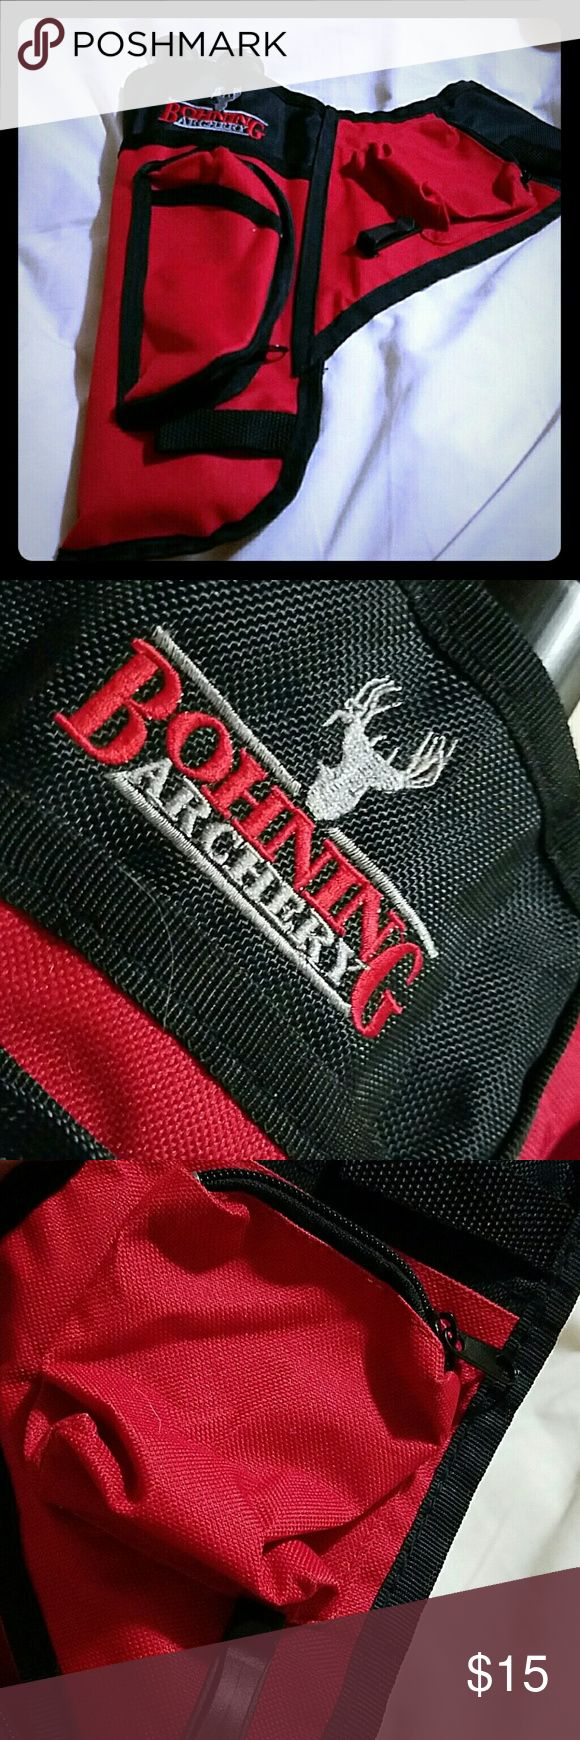 Bohing archery quiver never been used 2 pockets Will trade! Only other archery equipment that I like Other